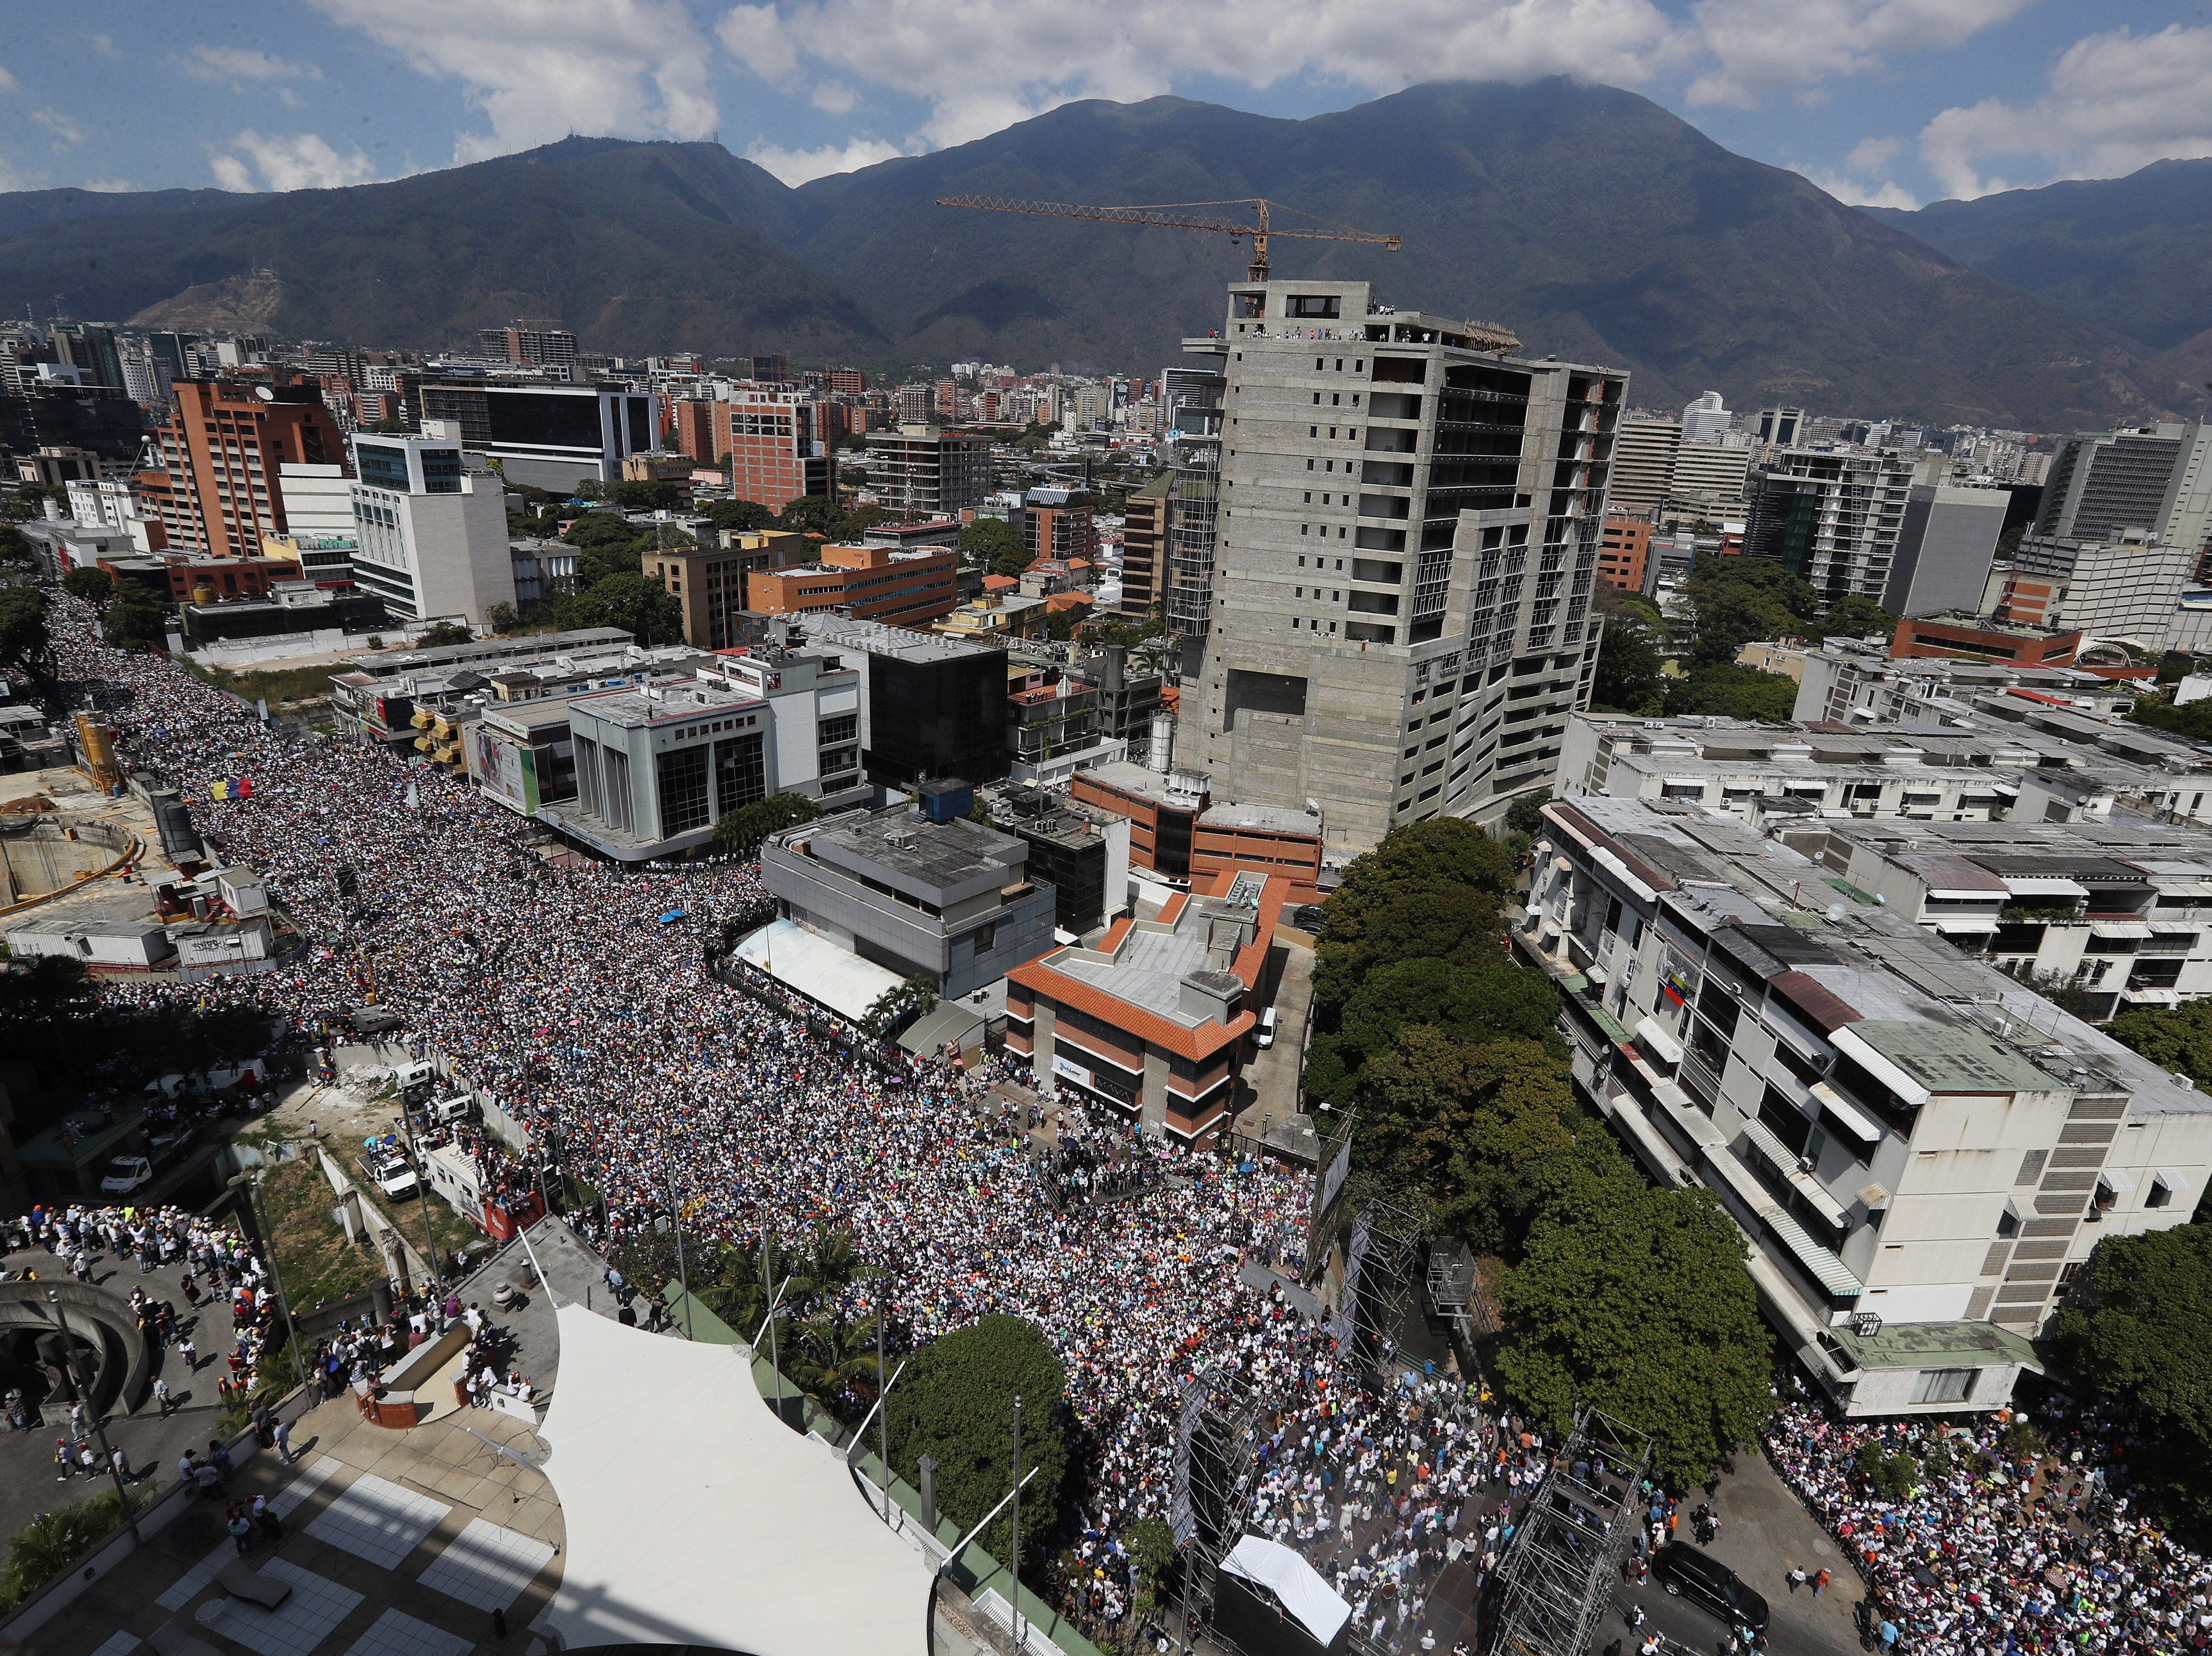 Thousands of sympathizers of the Venezuelan opposition participate in a march against Nicolas Maduro's Government, in Caracas, Venezuela on Feb. 2, 2019. Maduro and his opponent National Assembly leader Juan Guaido have called on their supporters to take to the streets as international pressure increased on Maduro to resign. Guiado had declared himself interim president of Venezuela on January 23 and promised to guide the country toward new election as he consider last May's election not valid.